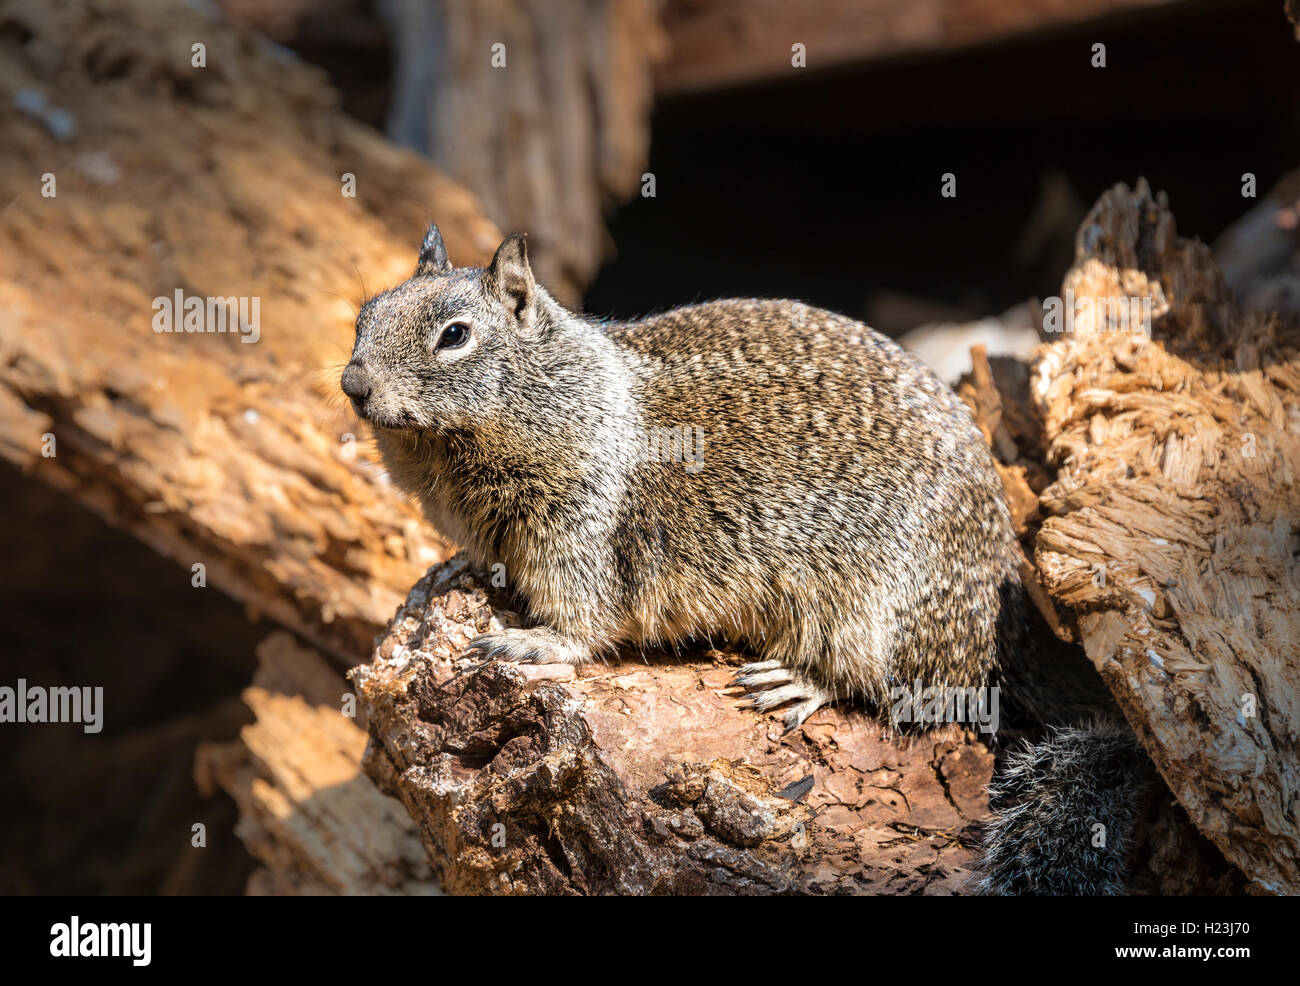 California ground squirrel (Spermophilus beecheyi), Yosemite National Park, California, USA Stock Photo